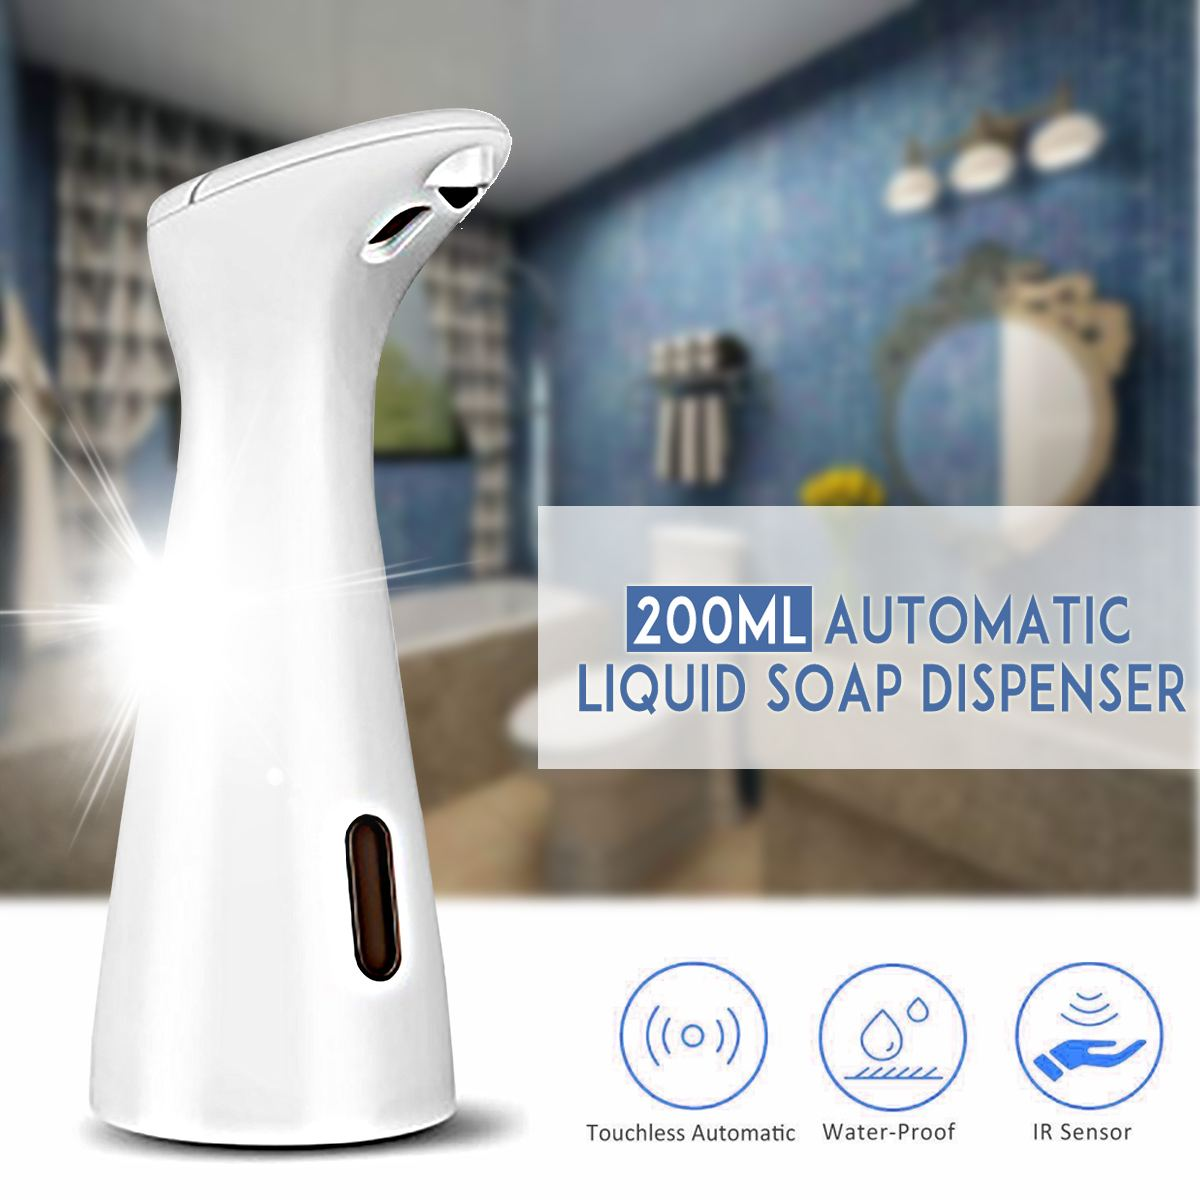 200ml Automatic Liquid Soap Dispenser Intelligent Sensor Touchless Auto Foam Hand Washing Kitchen Bathroom Smart Home image